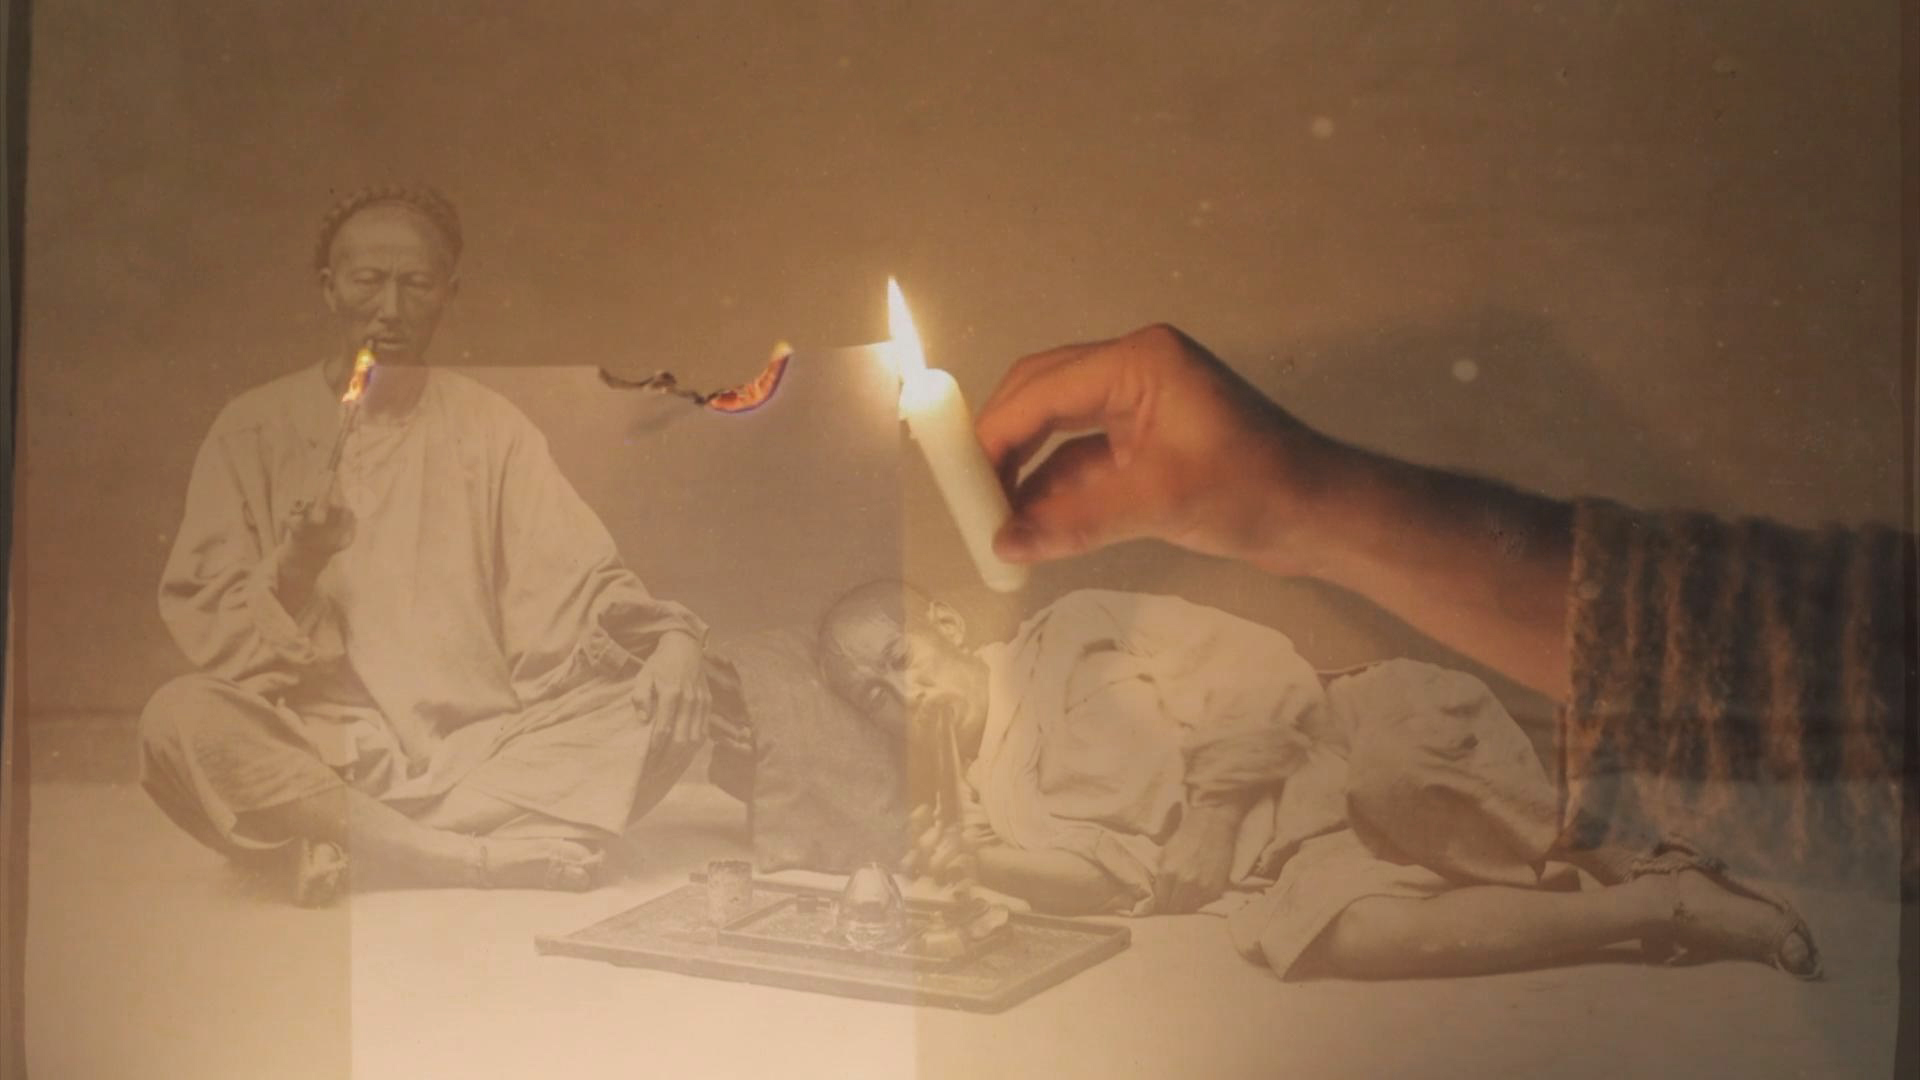 A hand holding a candle burns a piece of paper. Superimposed across the image is a 19th century B&W photograph of Chinese men smoking opium.